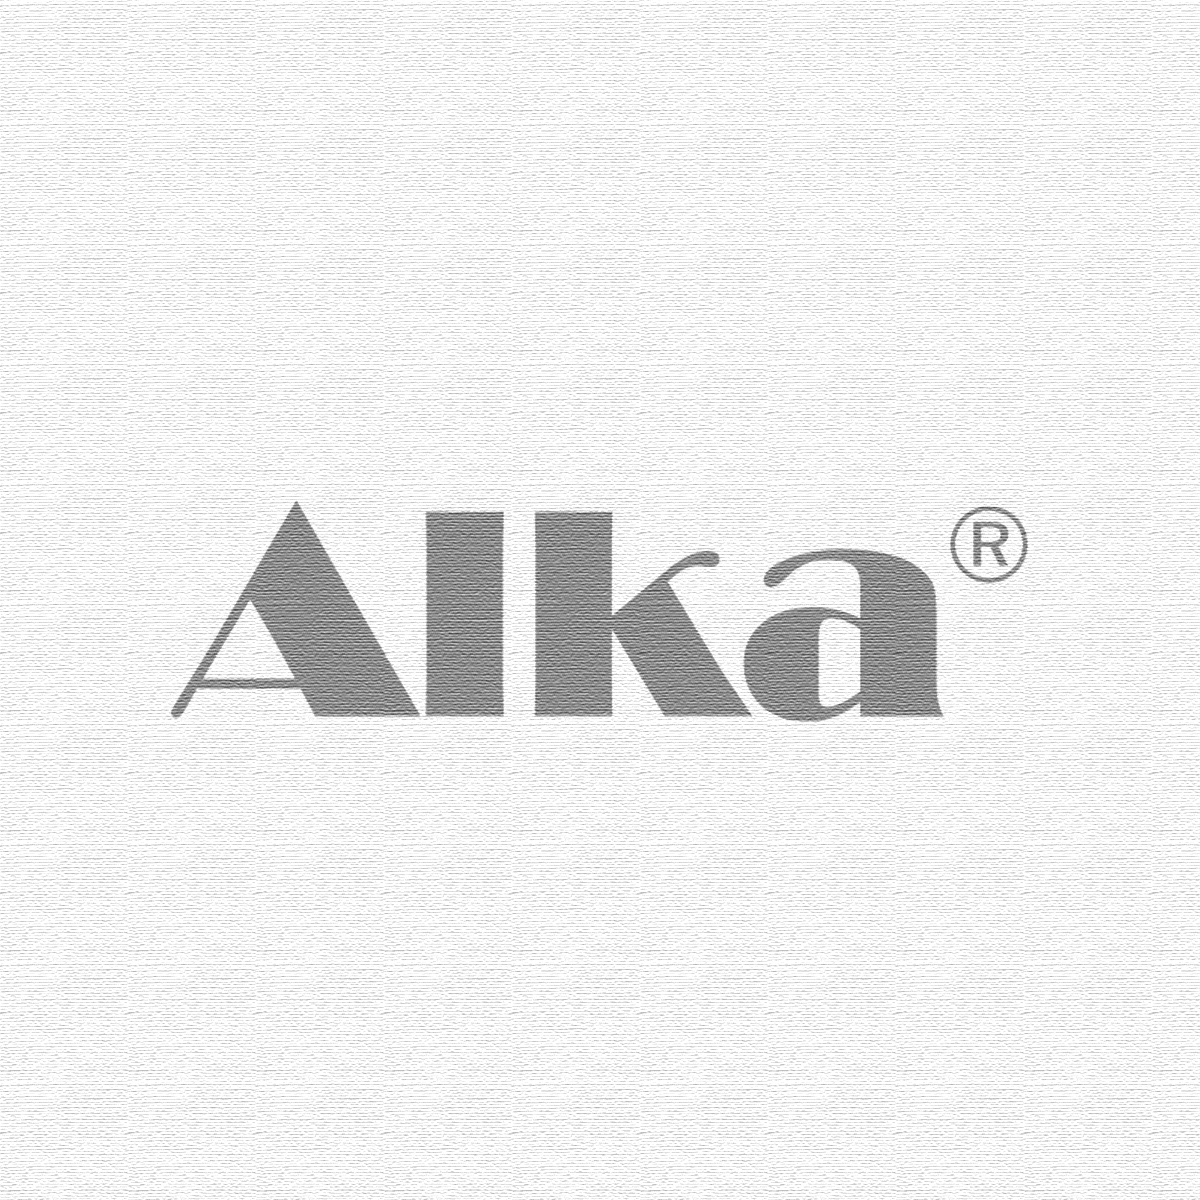 Alka® Drops - 37ml - Spanish label